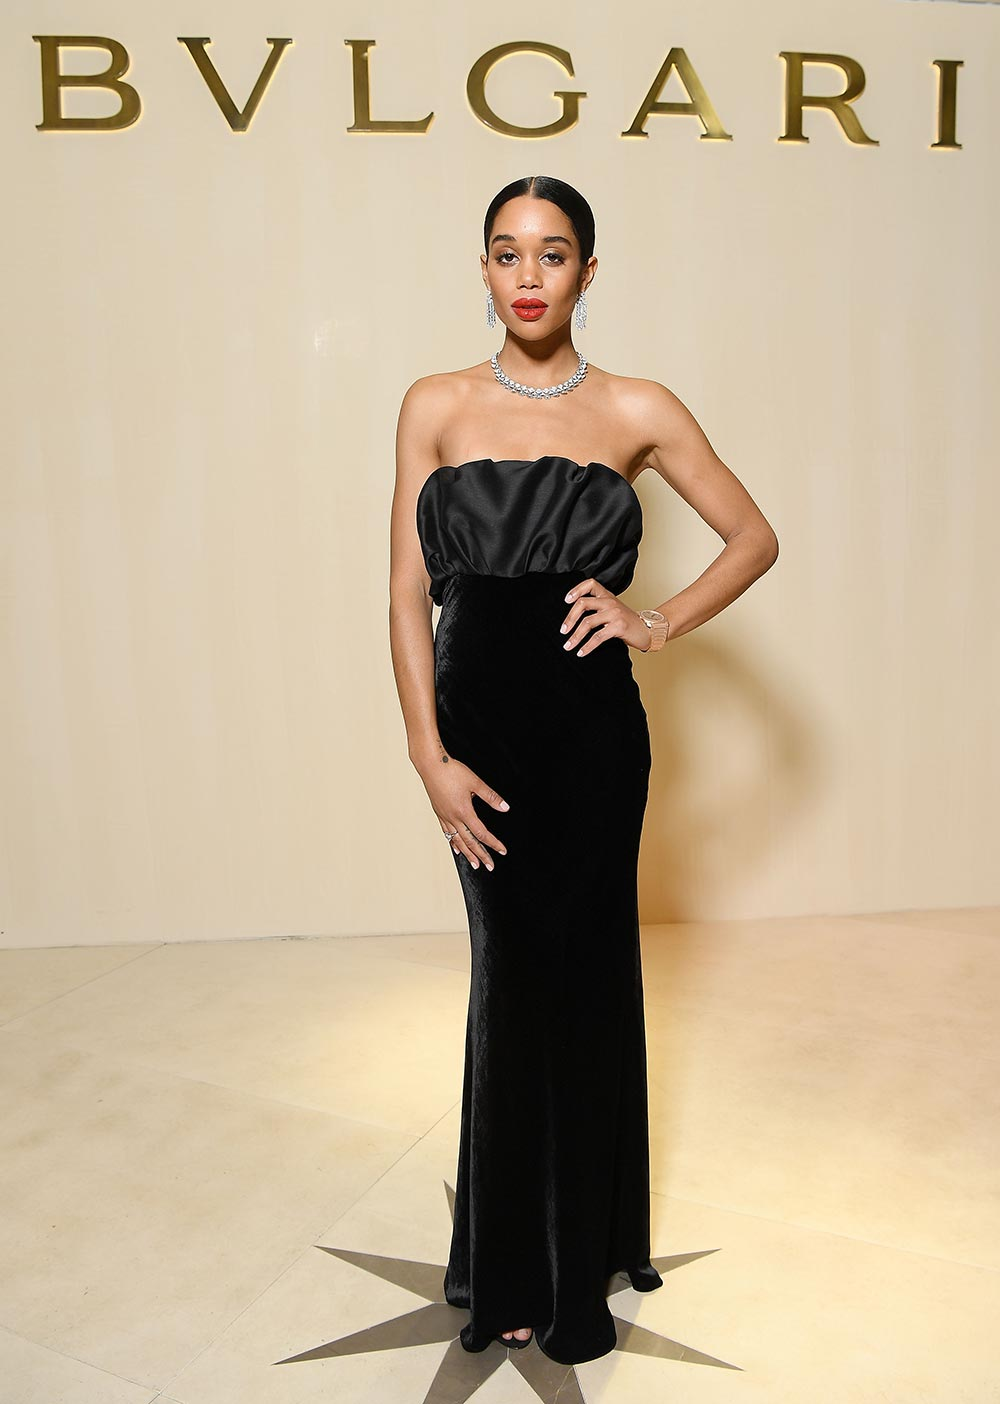 Bulgari Basel Press Party - Laura Harrier - Hair Massimo Serini - Makeup Luigi Rizzello per Massimo Serini